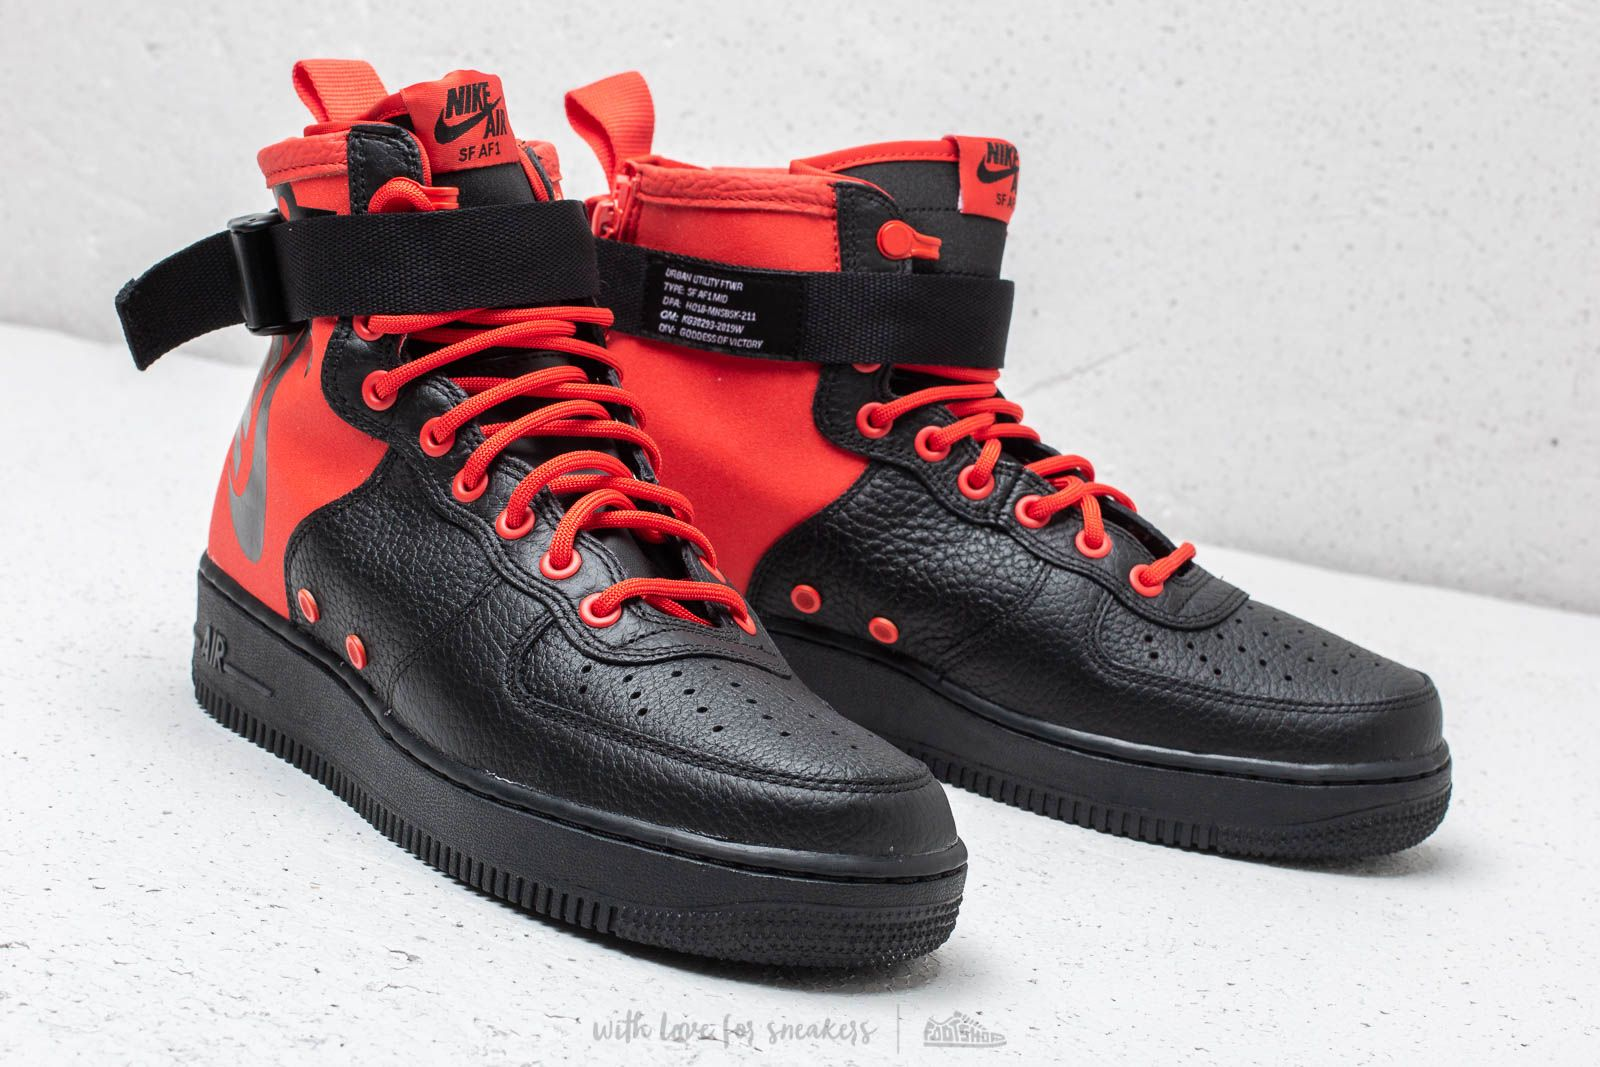 Nike SF Air Force 1 Mid Habanero Red Habanero Red | Footshop